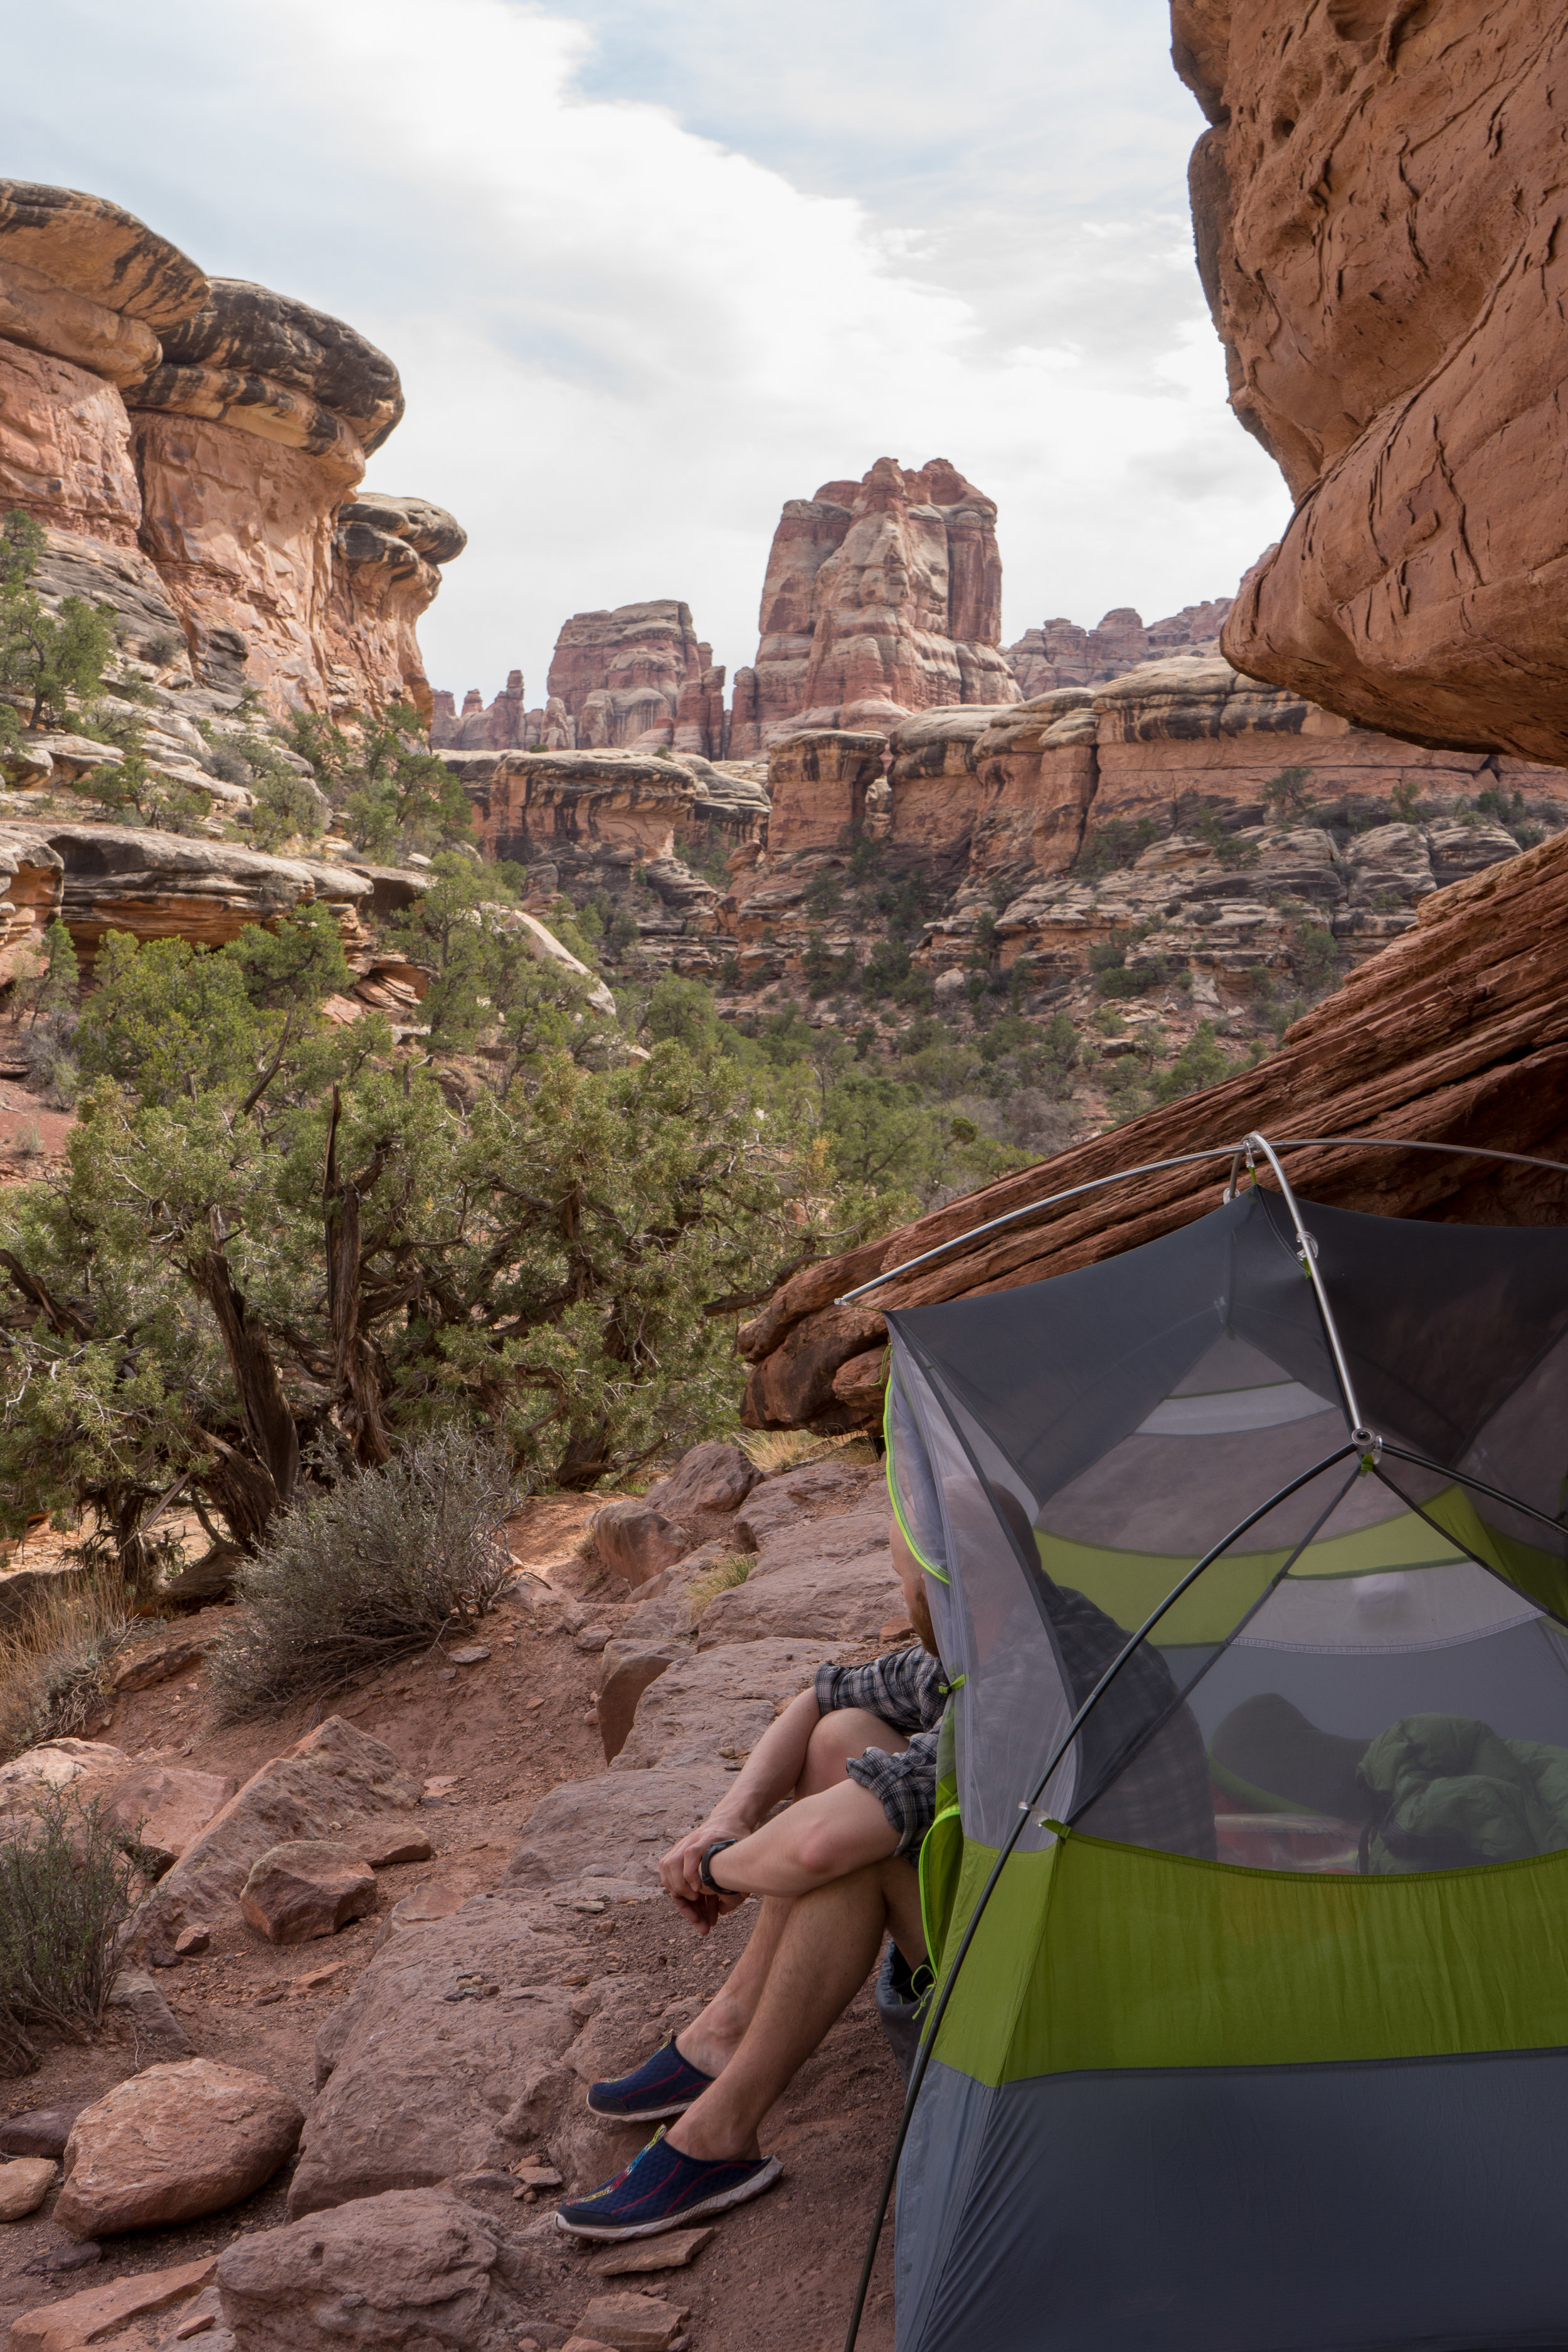 Campsite within the canyon